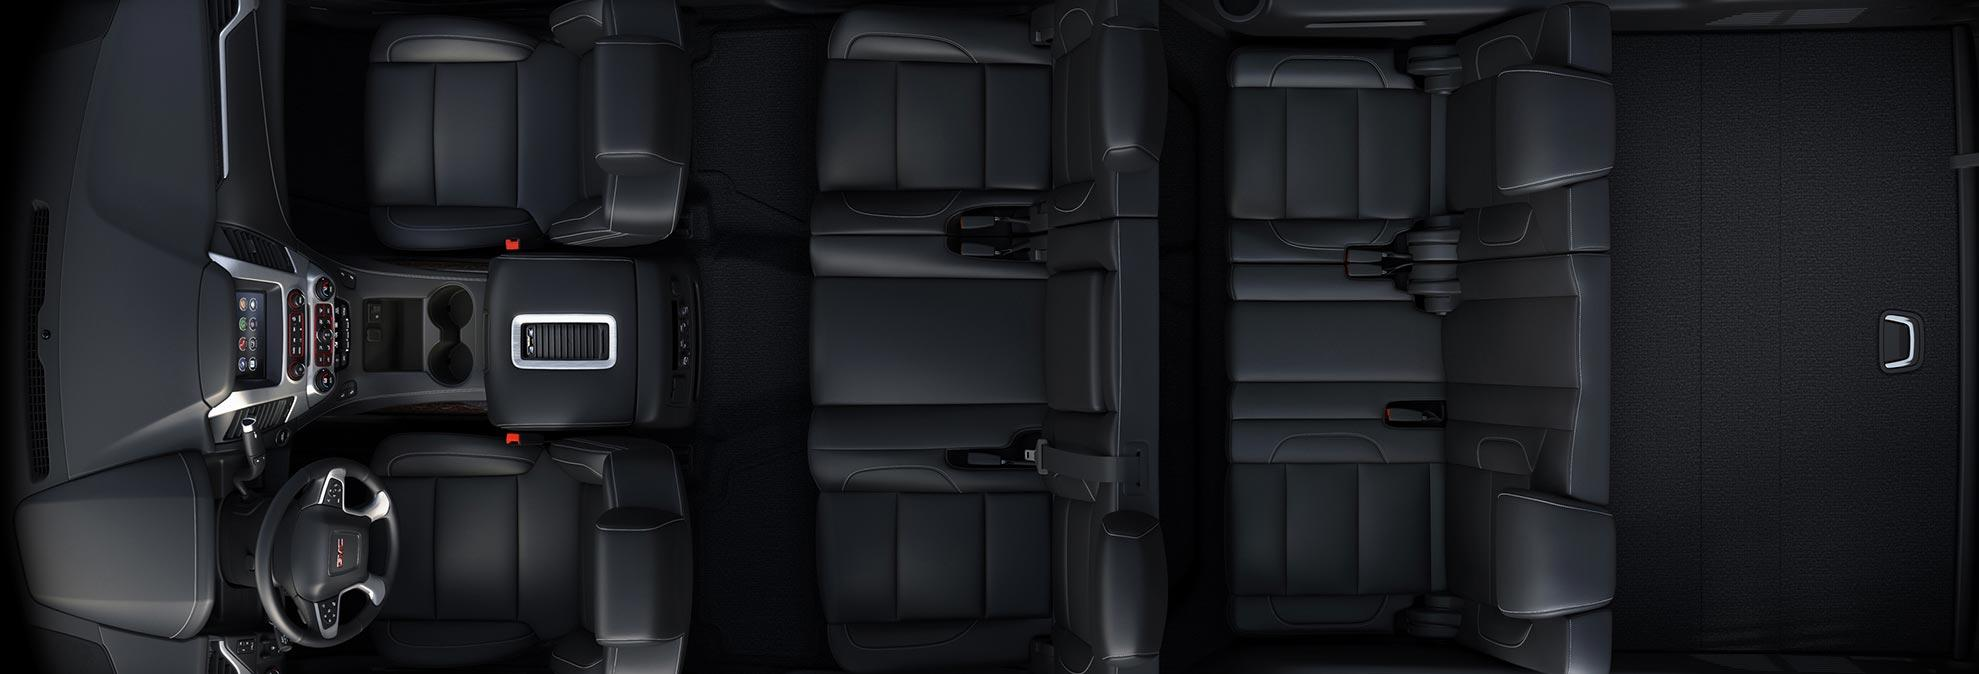 Buick Enclave Seating Capacity >> Cars, Minivans, and SUVs With the Best and Worst Third-Row Seats